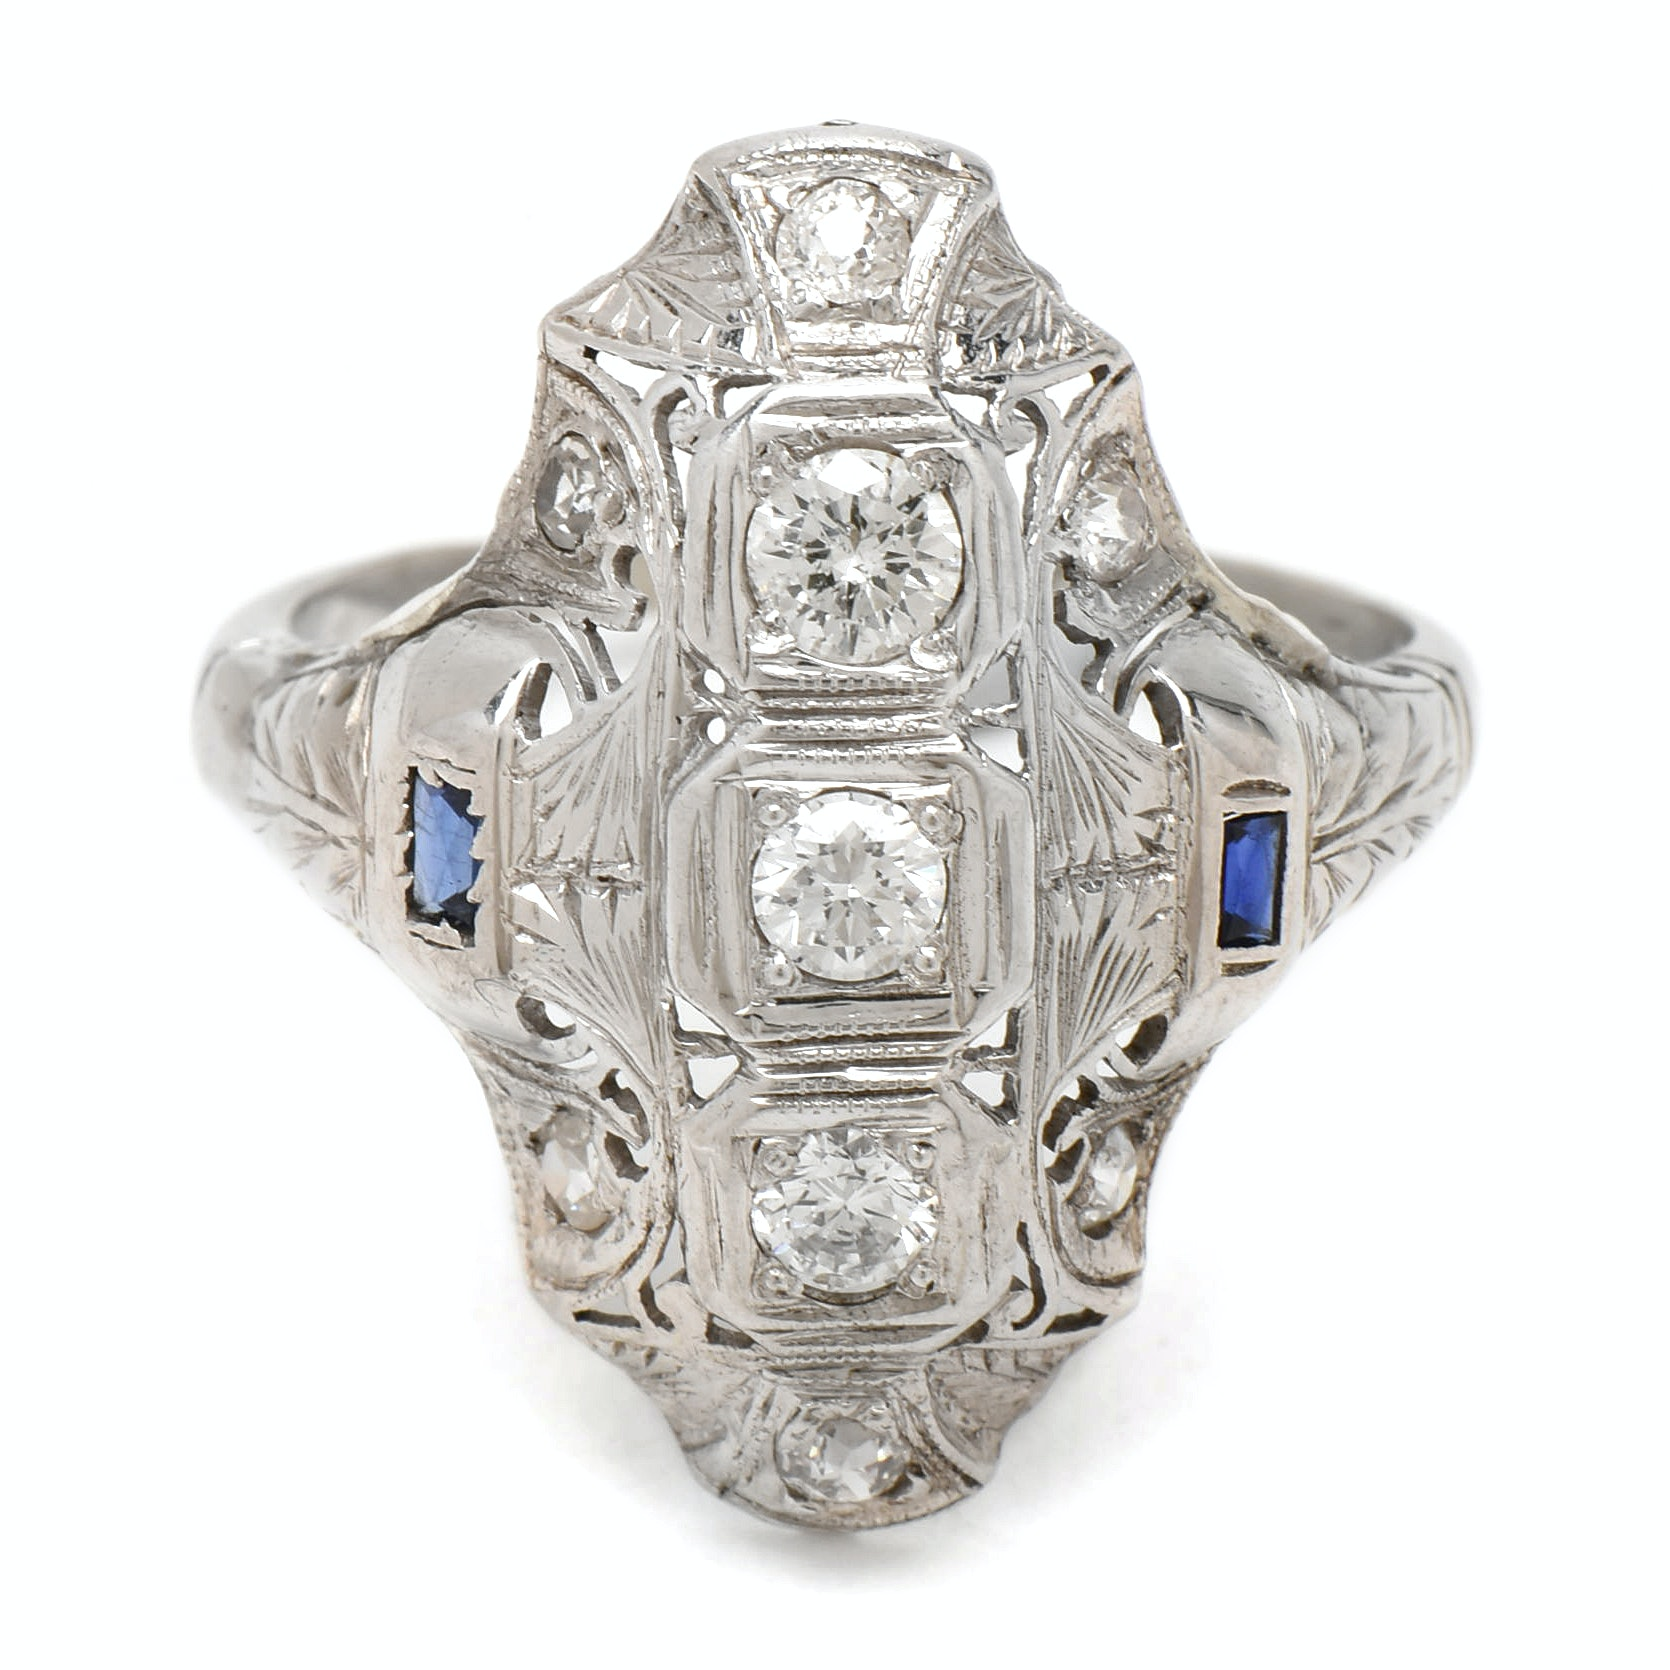 Vintage 18K White Gold Diamond and Synthetic Sapphire Openwork Ring